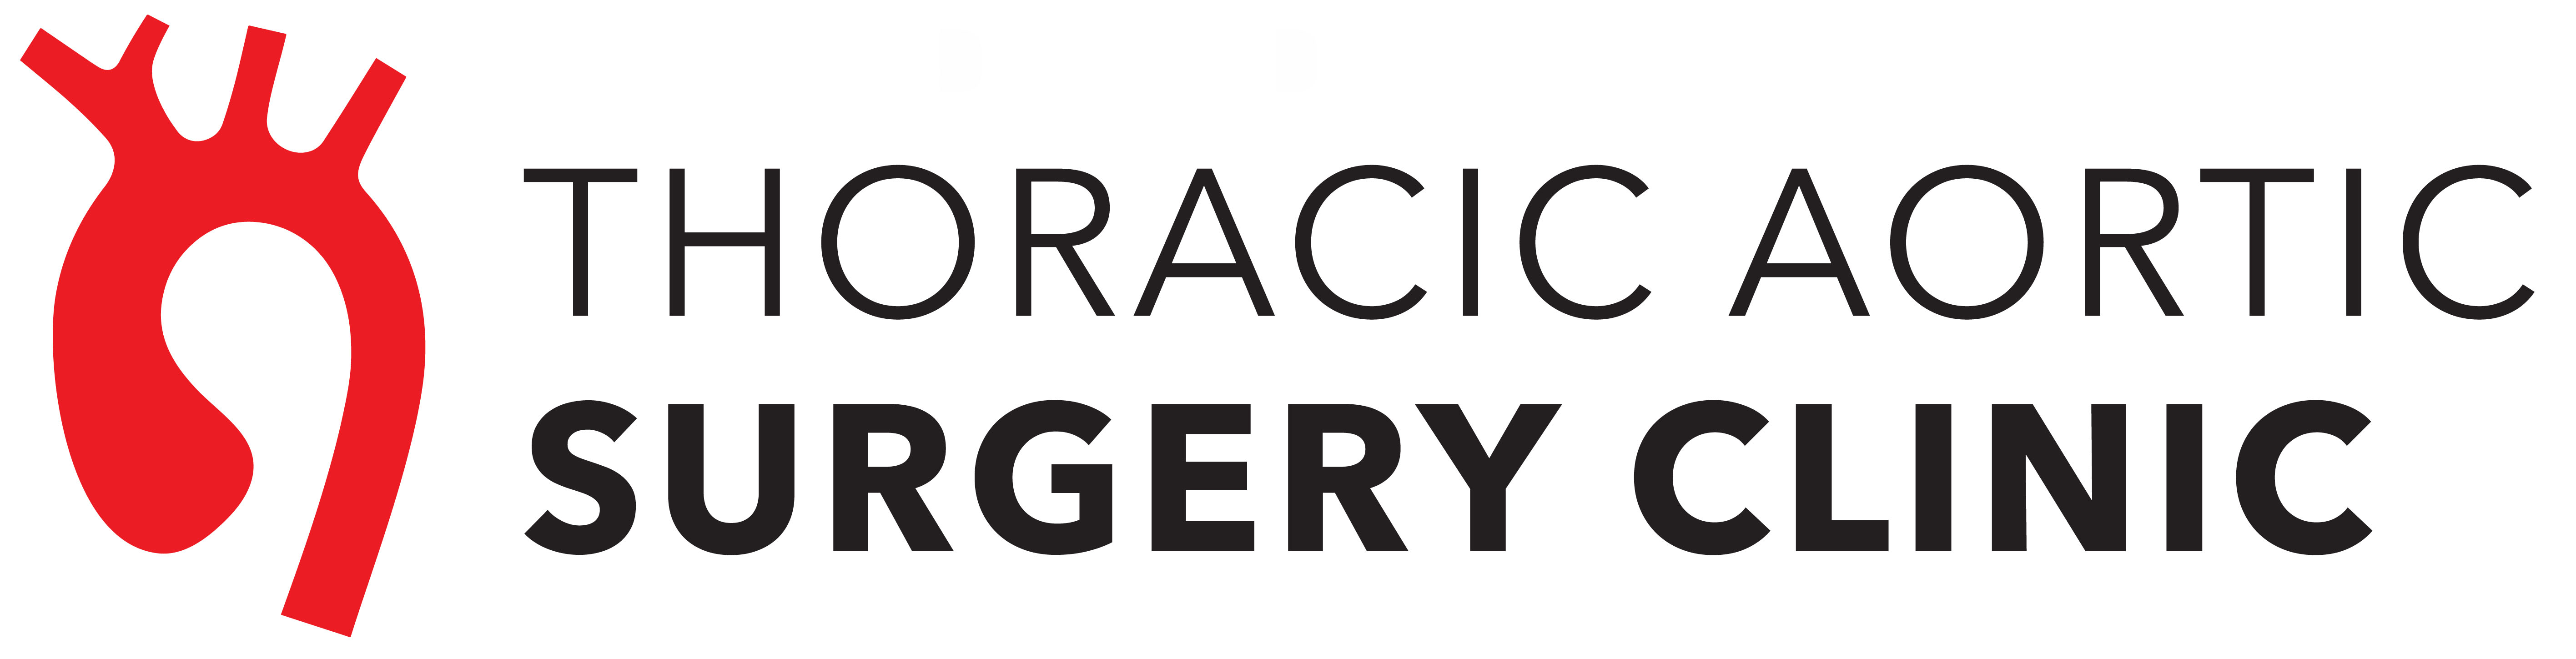 Thoracic Aortic Surgery Clinic logo